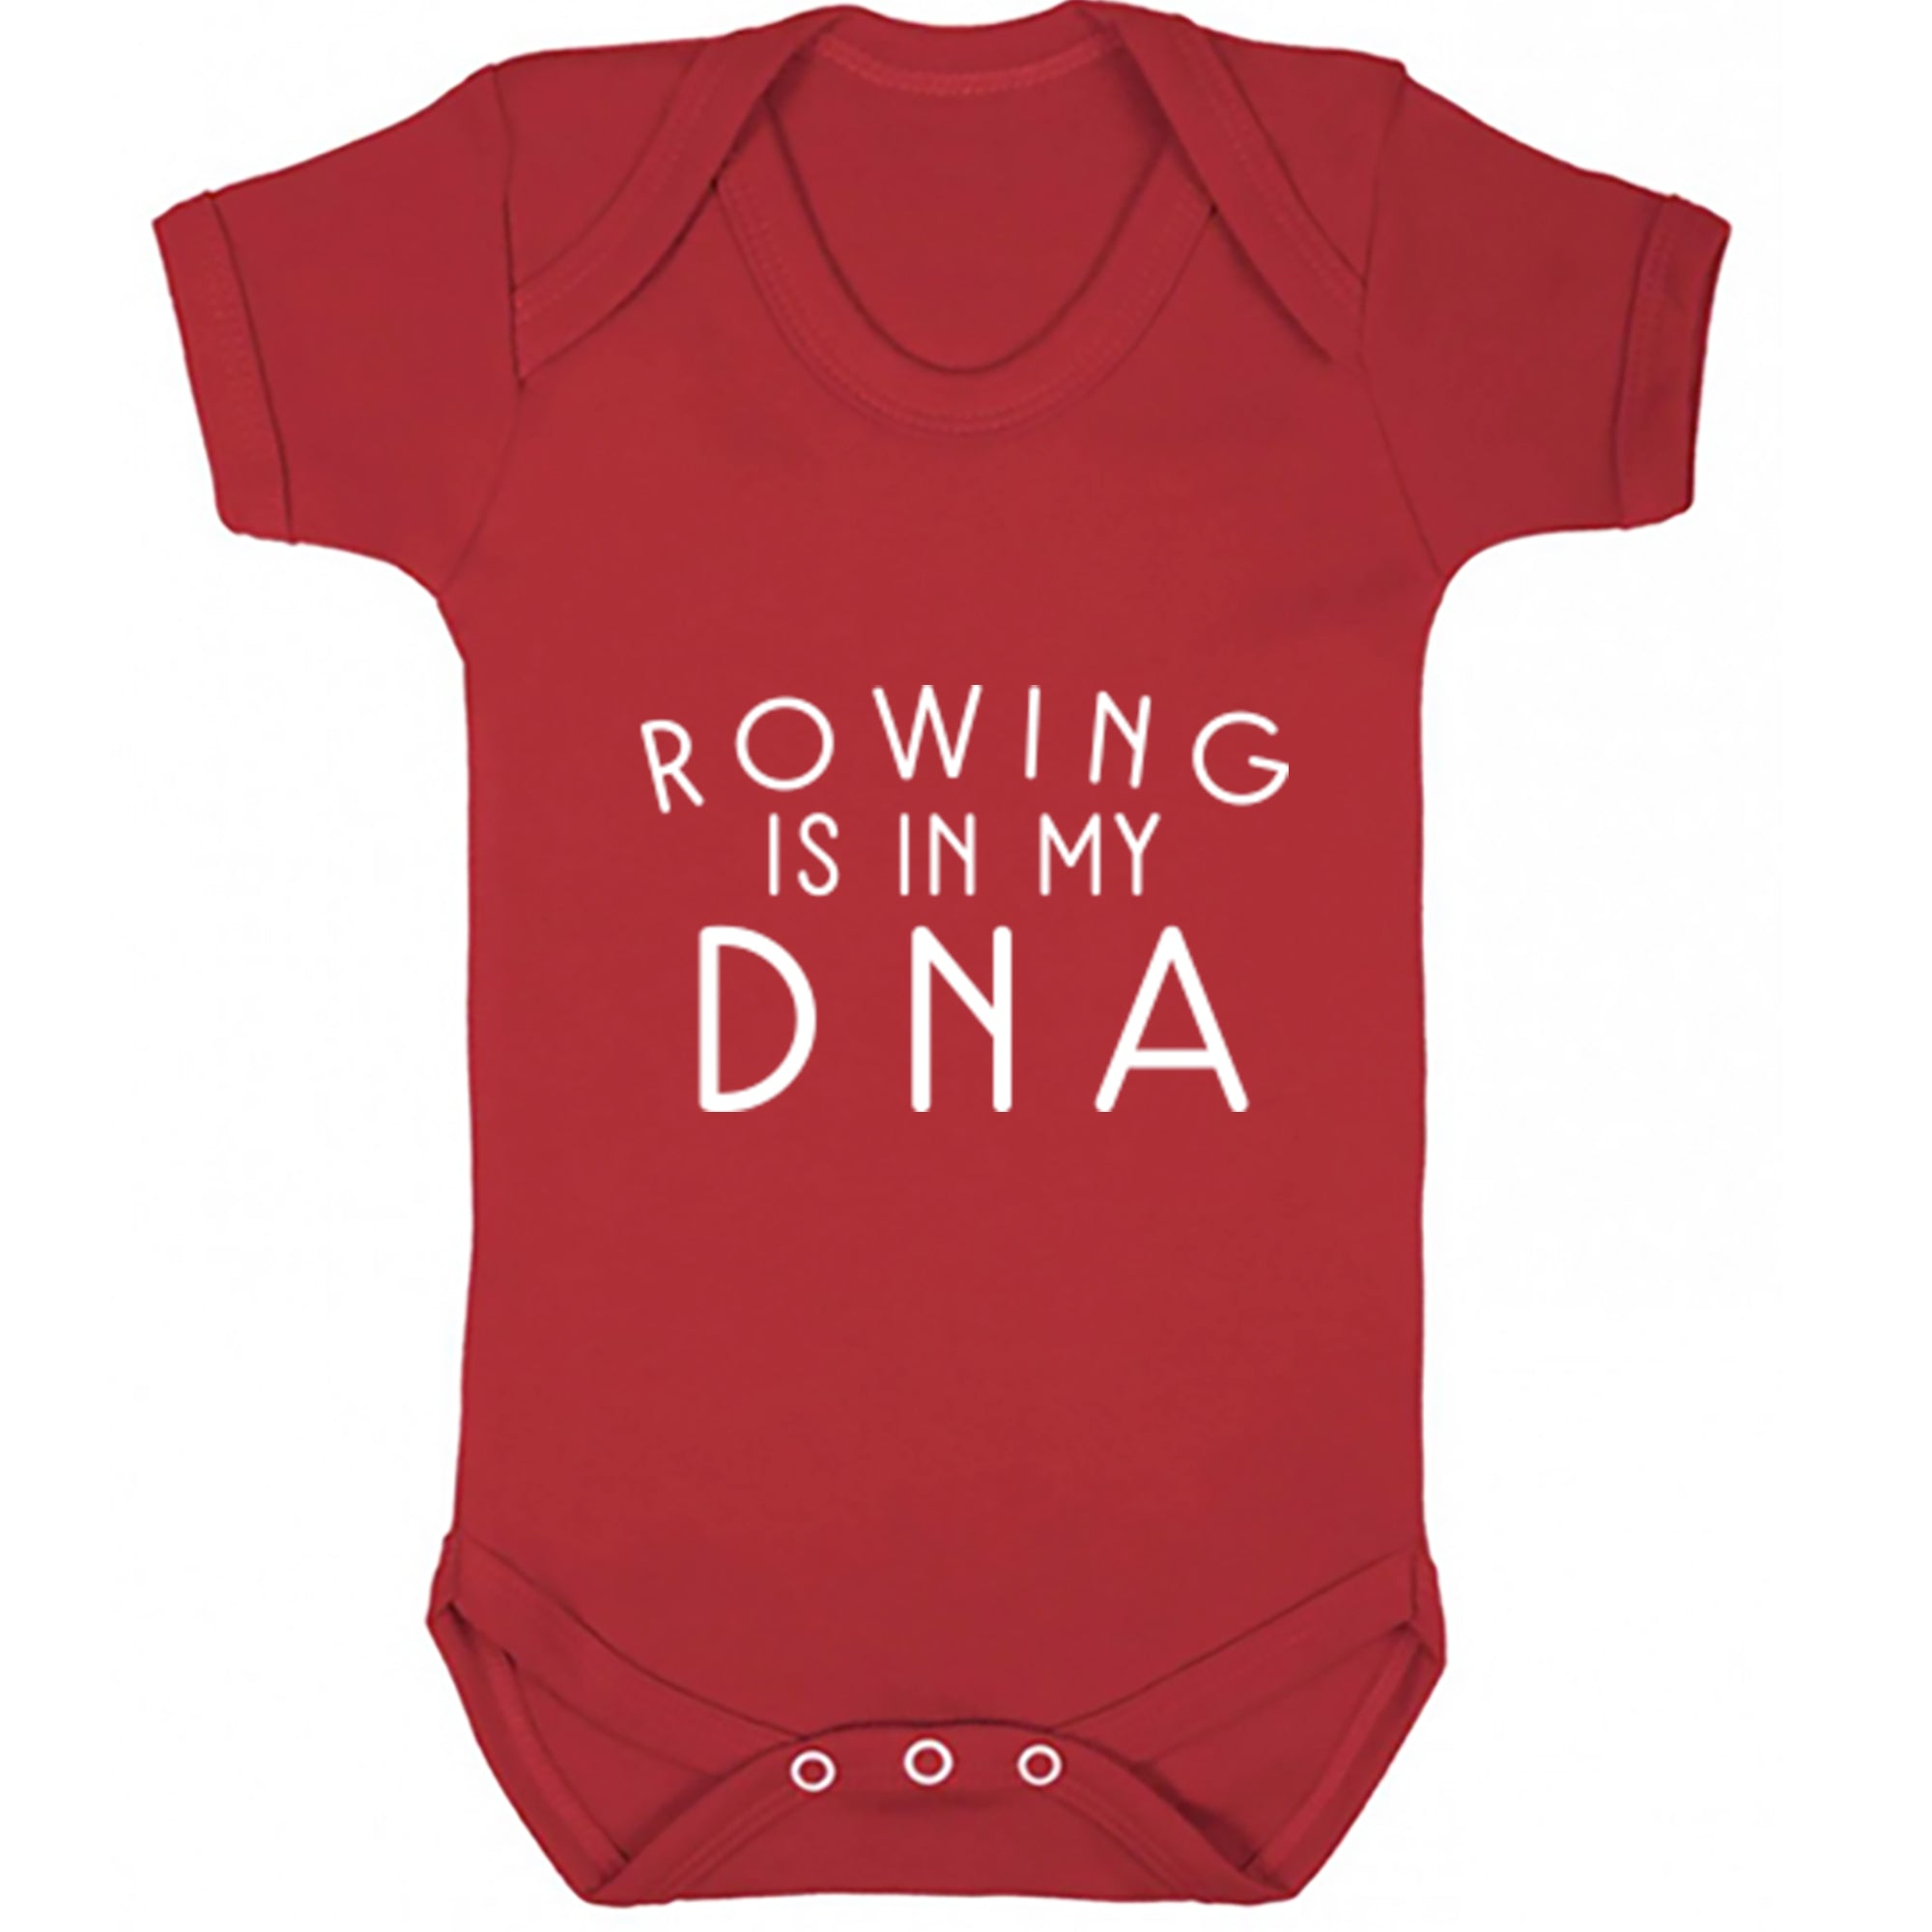 Rowing Is In My DNA Baby Vest S0697 - Illustrated Identity Ltd.